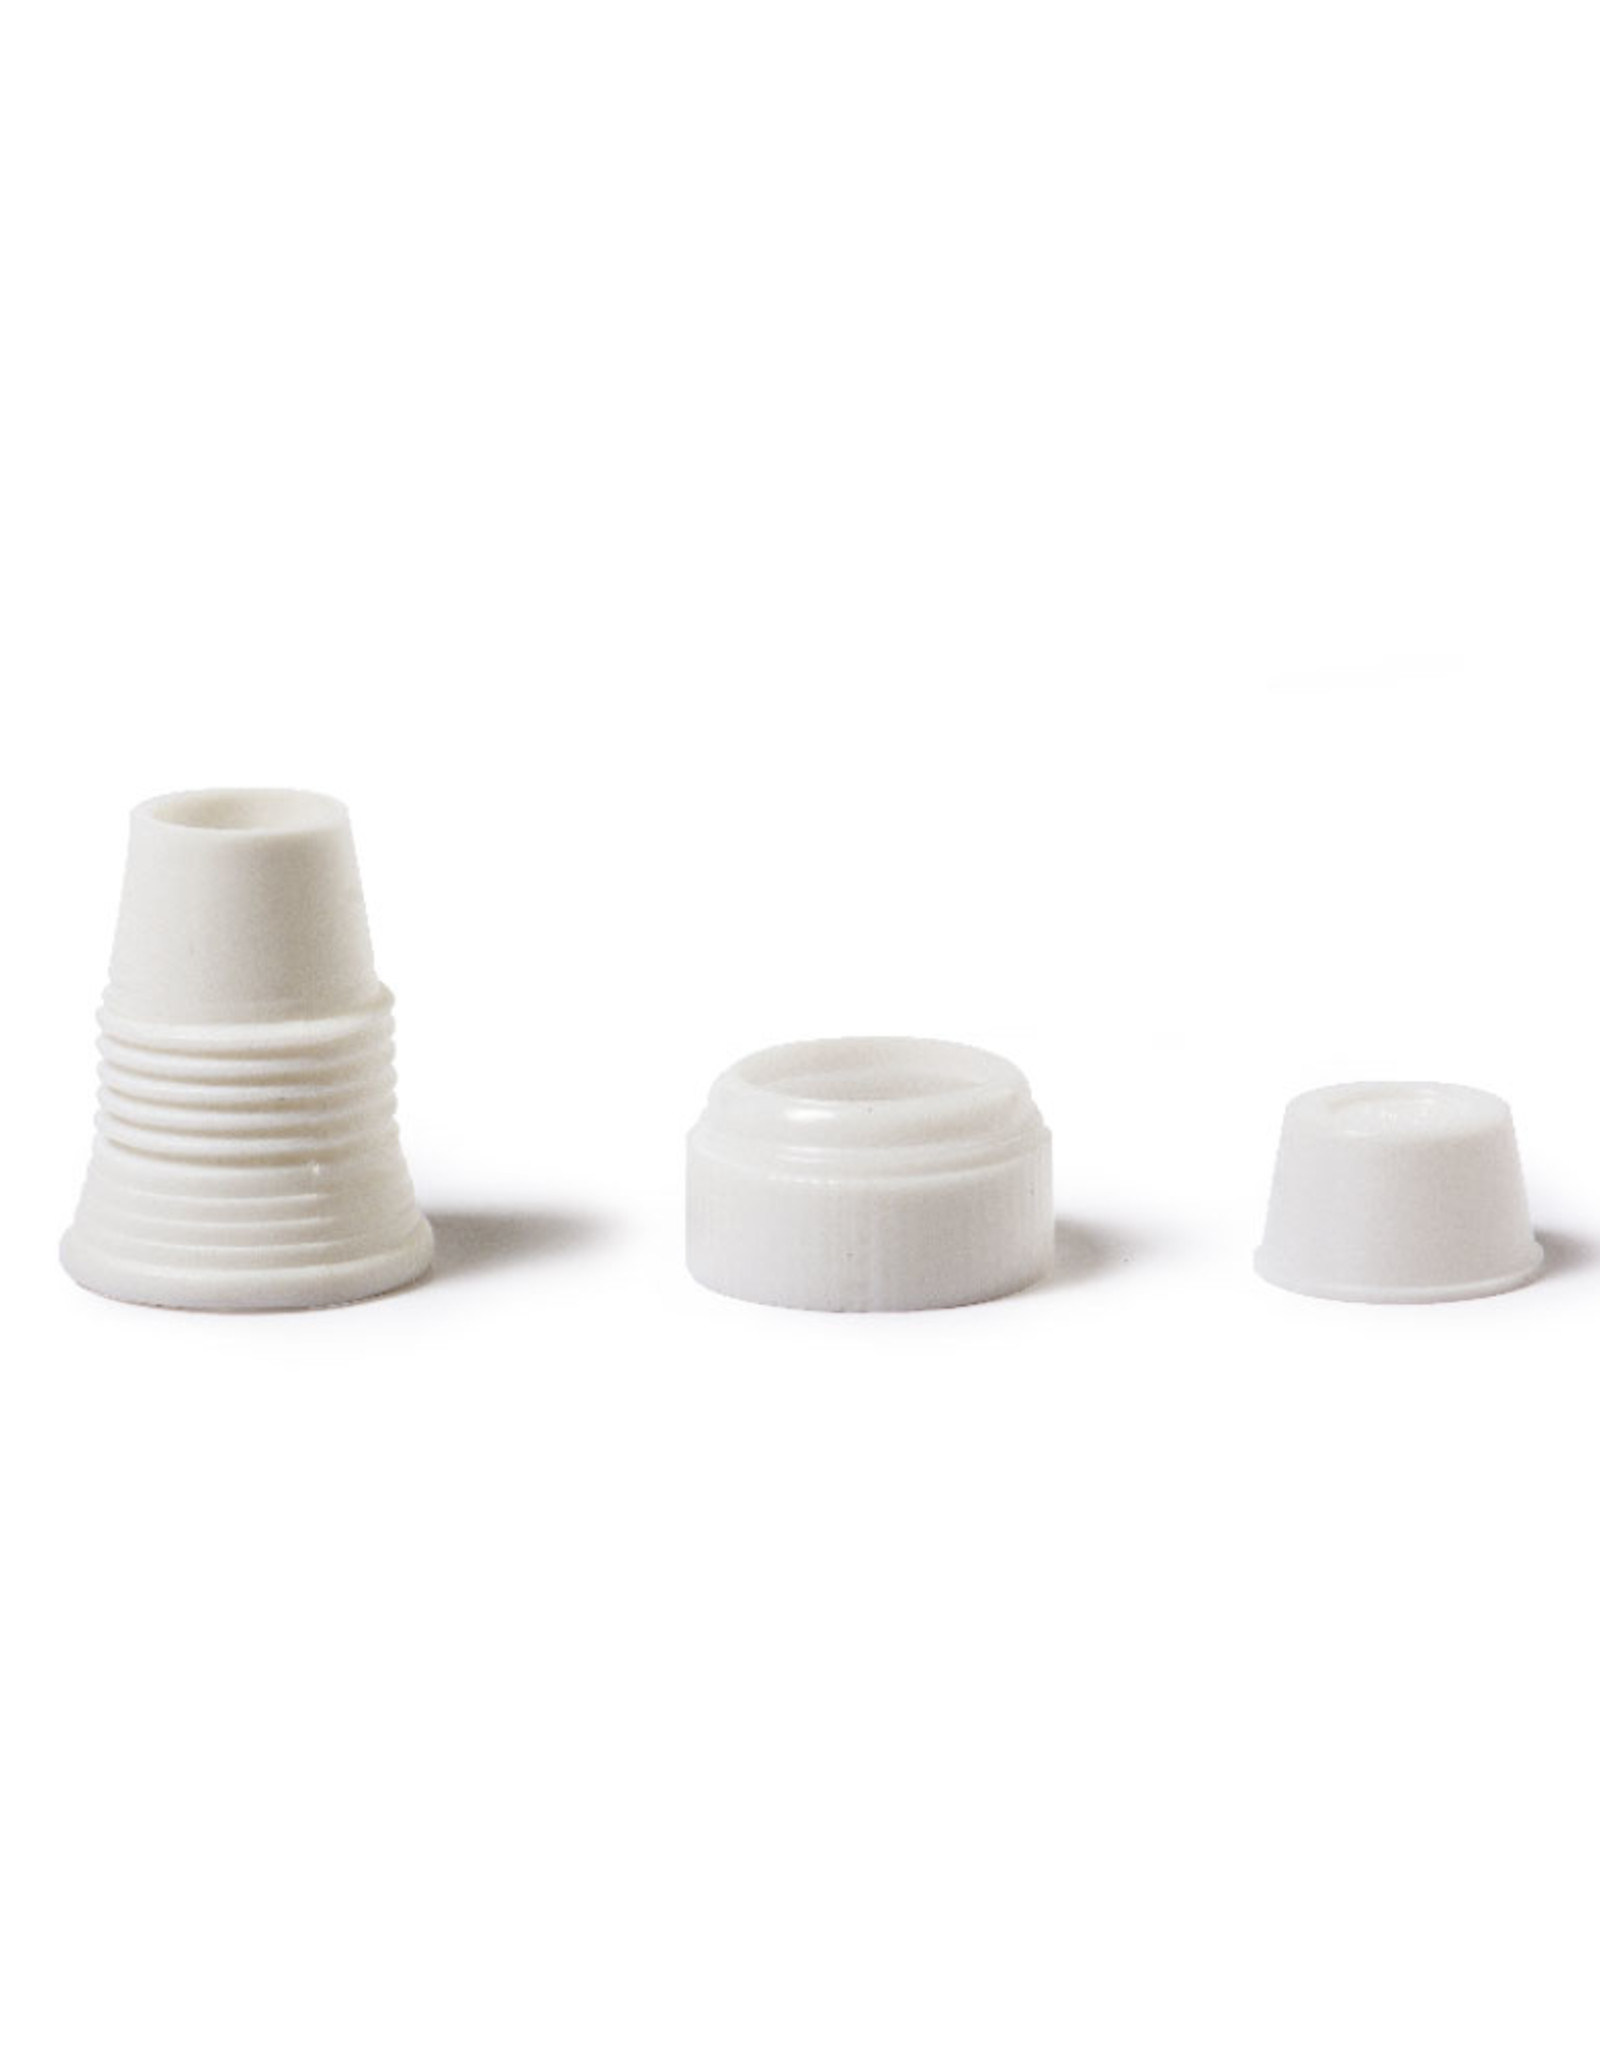 Decora Decora Standard Icing Bag Adapter/Coupler with Cap Set/12